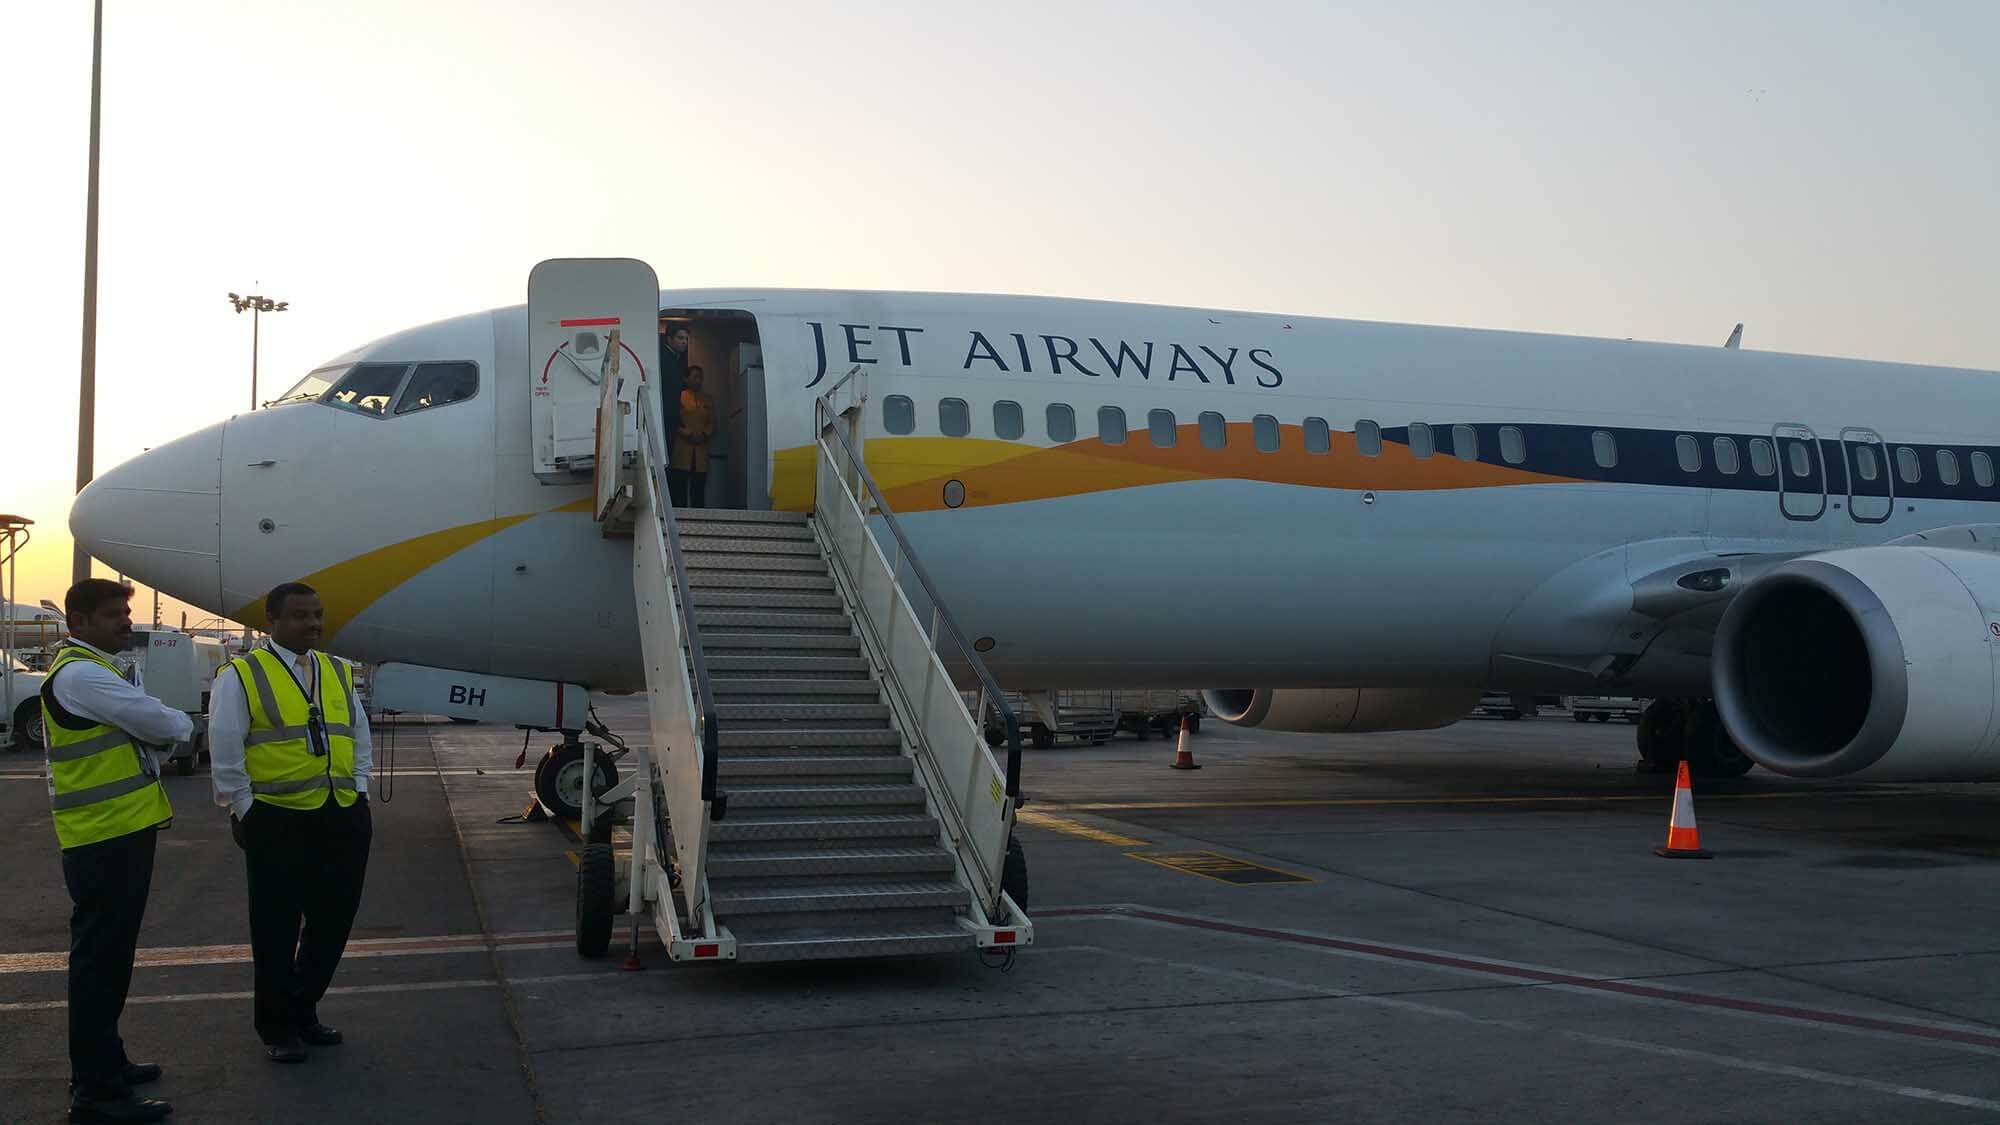 Digital nomad, traveling and happyness !!! Here my flyght Jet Airways while going to India